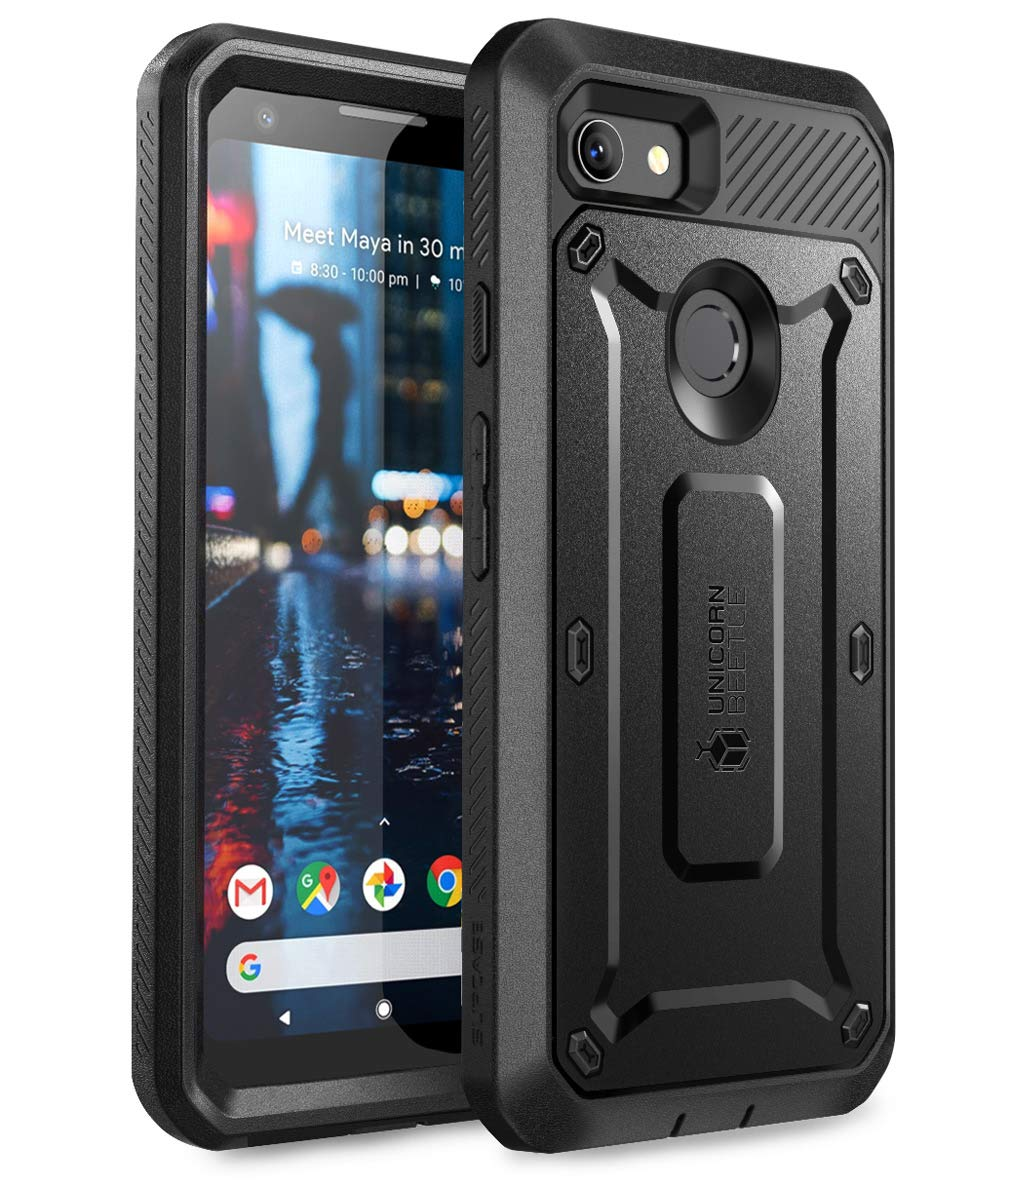 SupCase Unicorn Beetle Pro Series Designed for Google Pixel 3a Case, Full-Body Rugged Holster Case with Built-in Screen Protector for Google Pixel 3a 2019 Release (Black) by SupCase